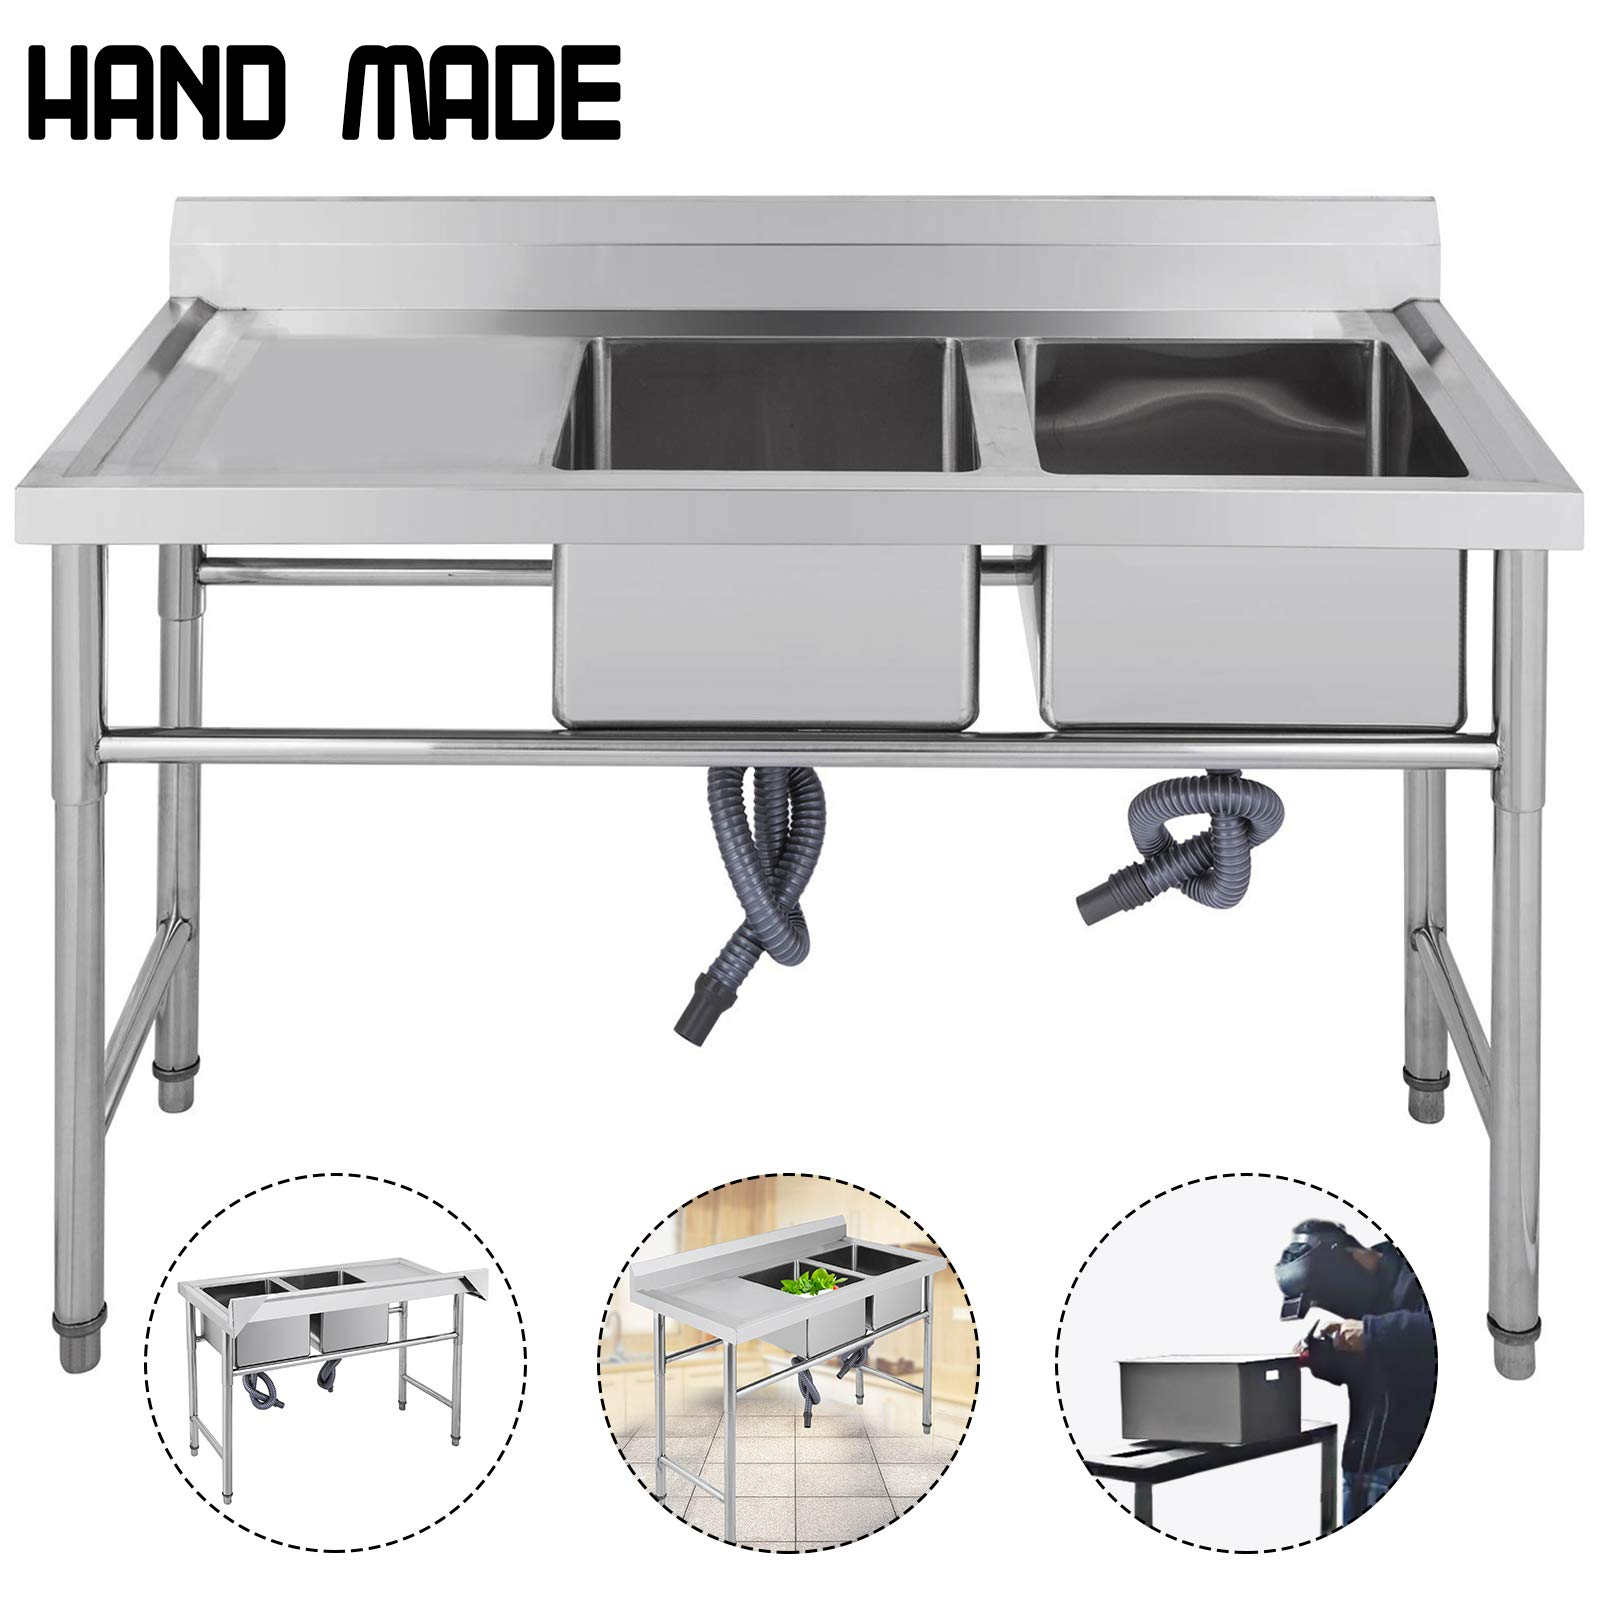 Mophorn Stainless Steel Bar Sink Commercial Standard Underbar Sink for bar kitchen restaurant (2 Compartment With Left Drainboard)